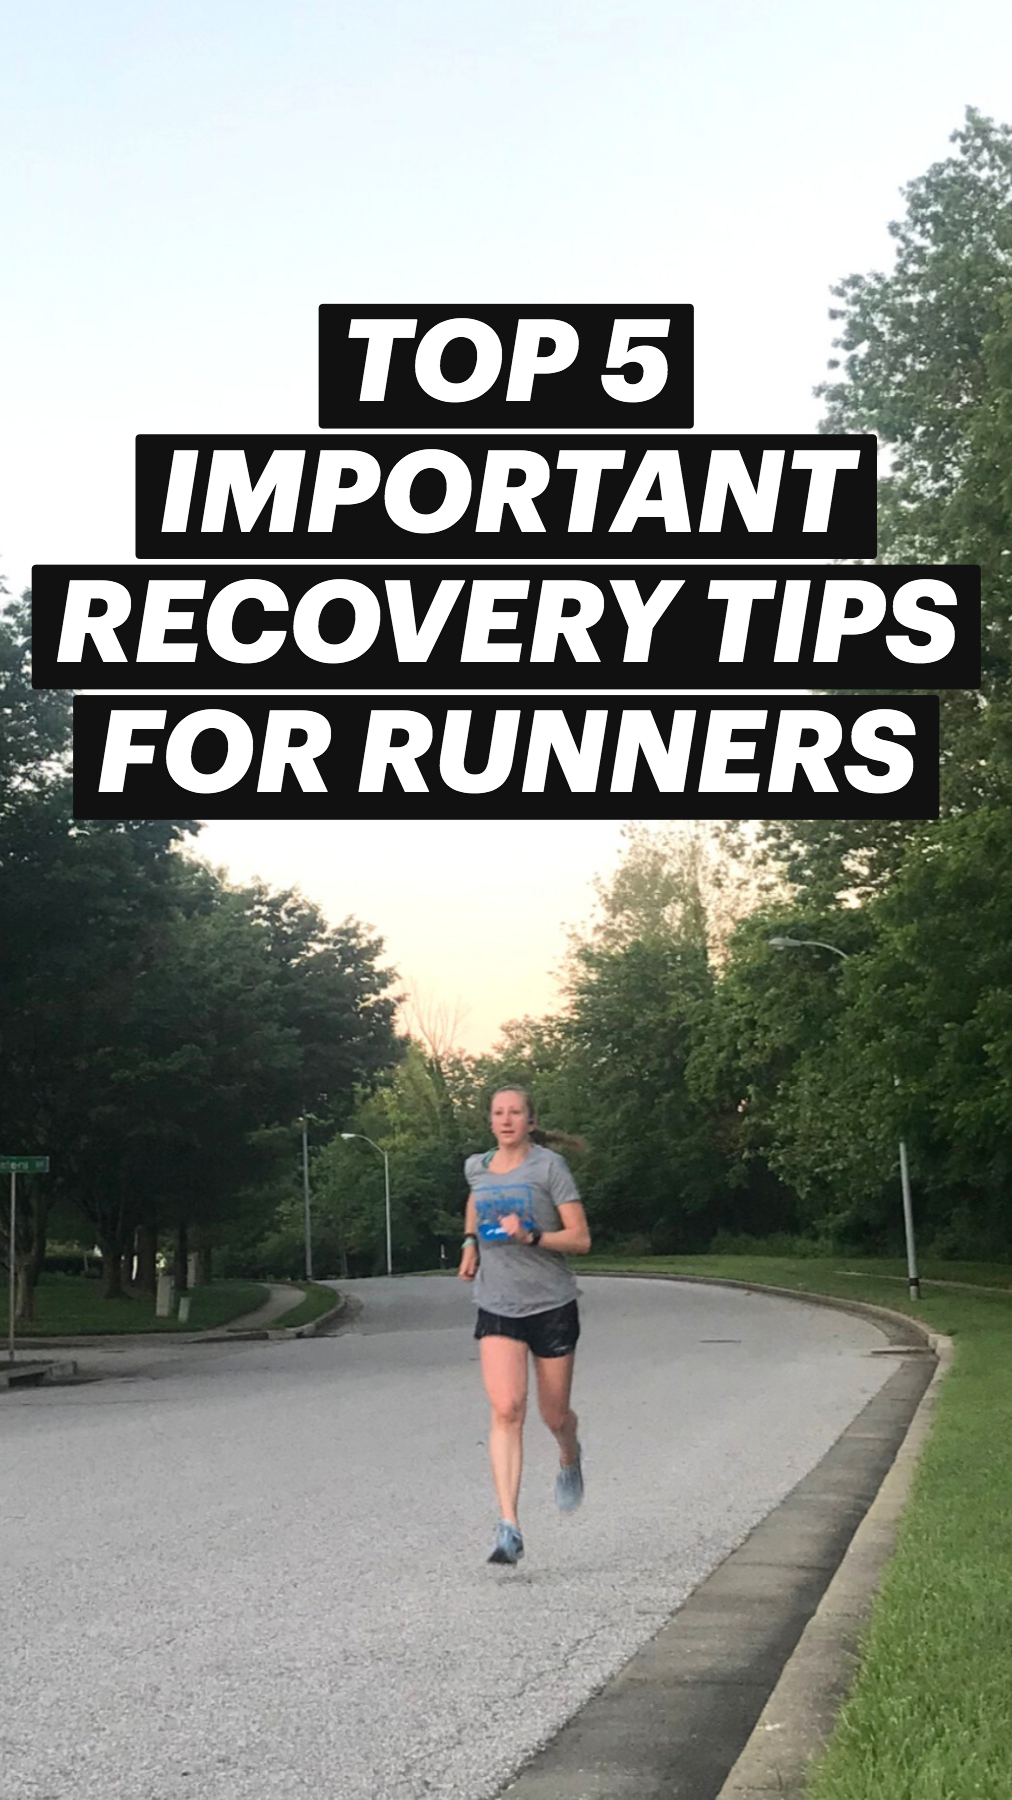 Top 5 Important Recovery Tips for Runners